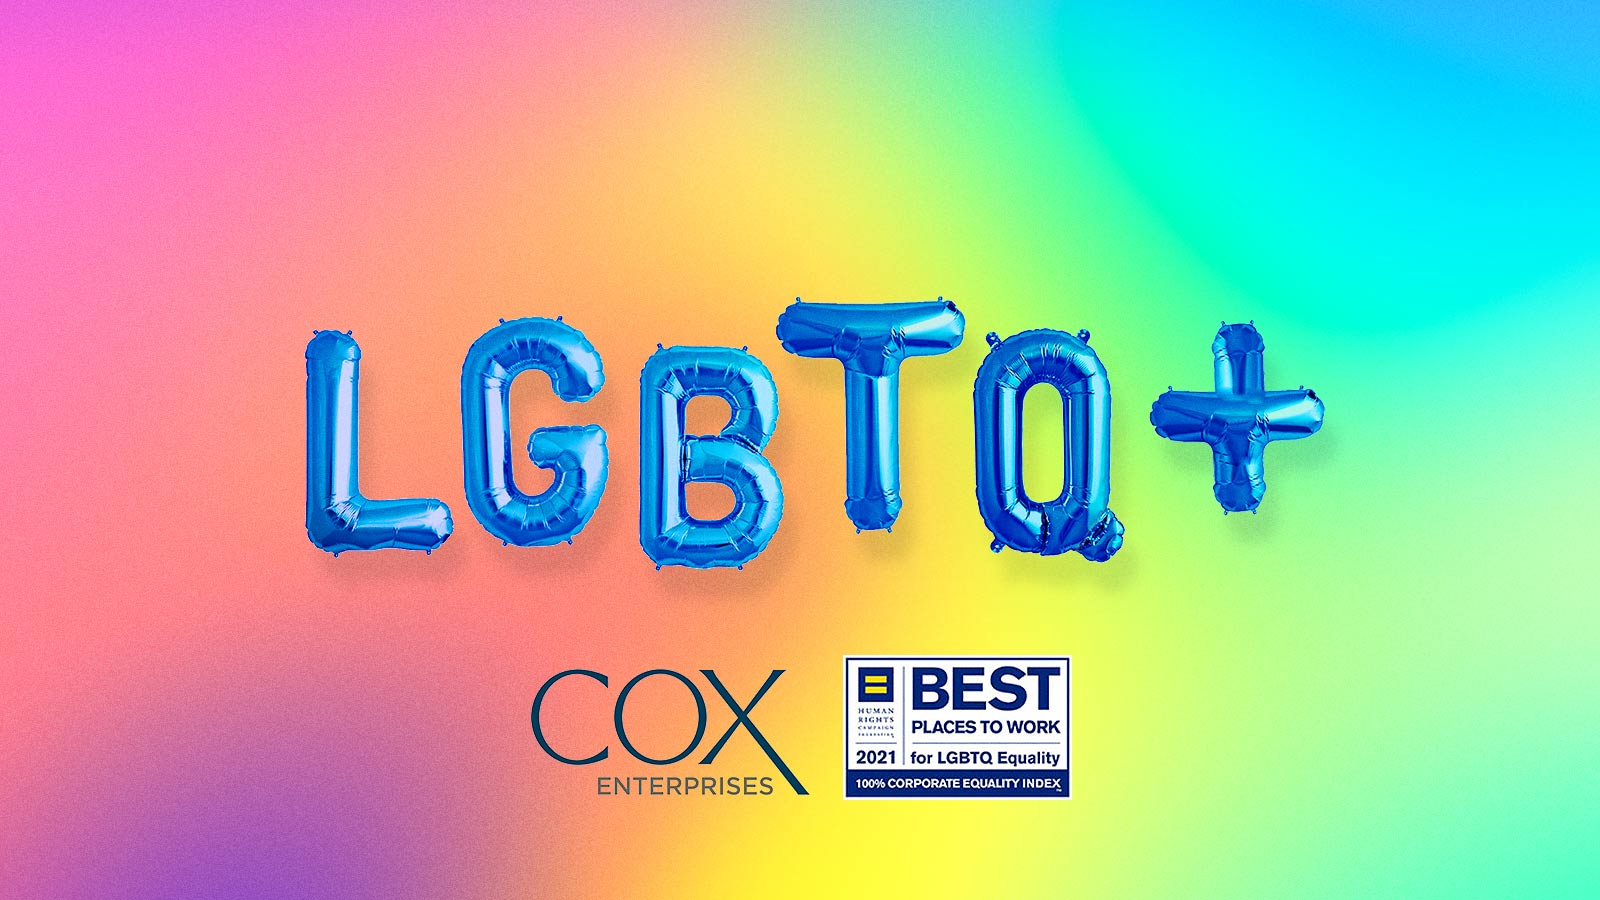 Best Place To Work for LGBTQ+